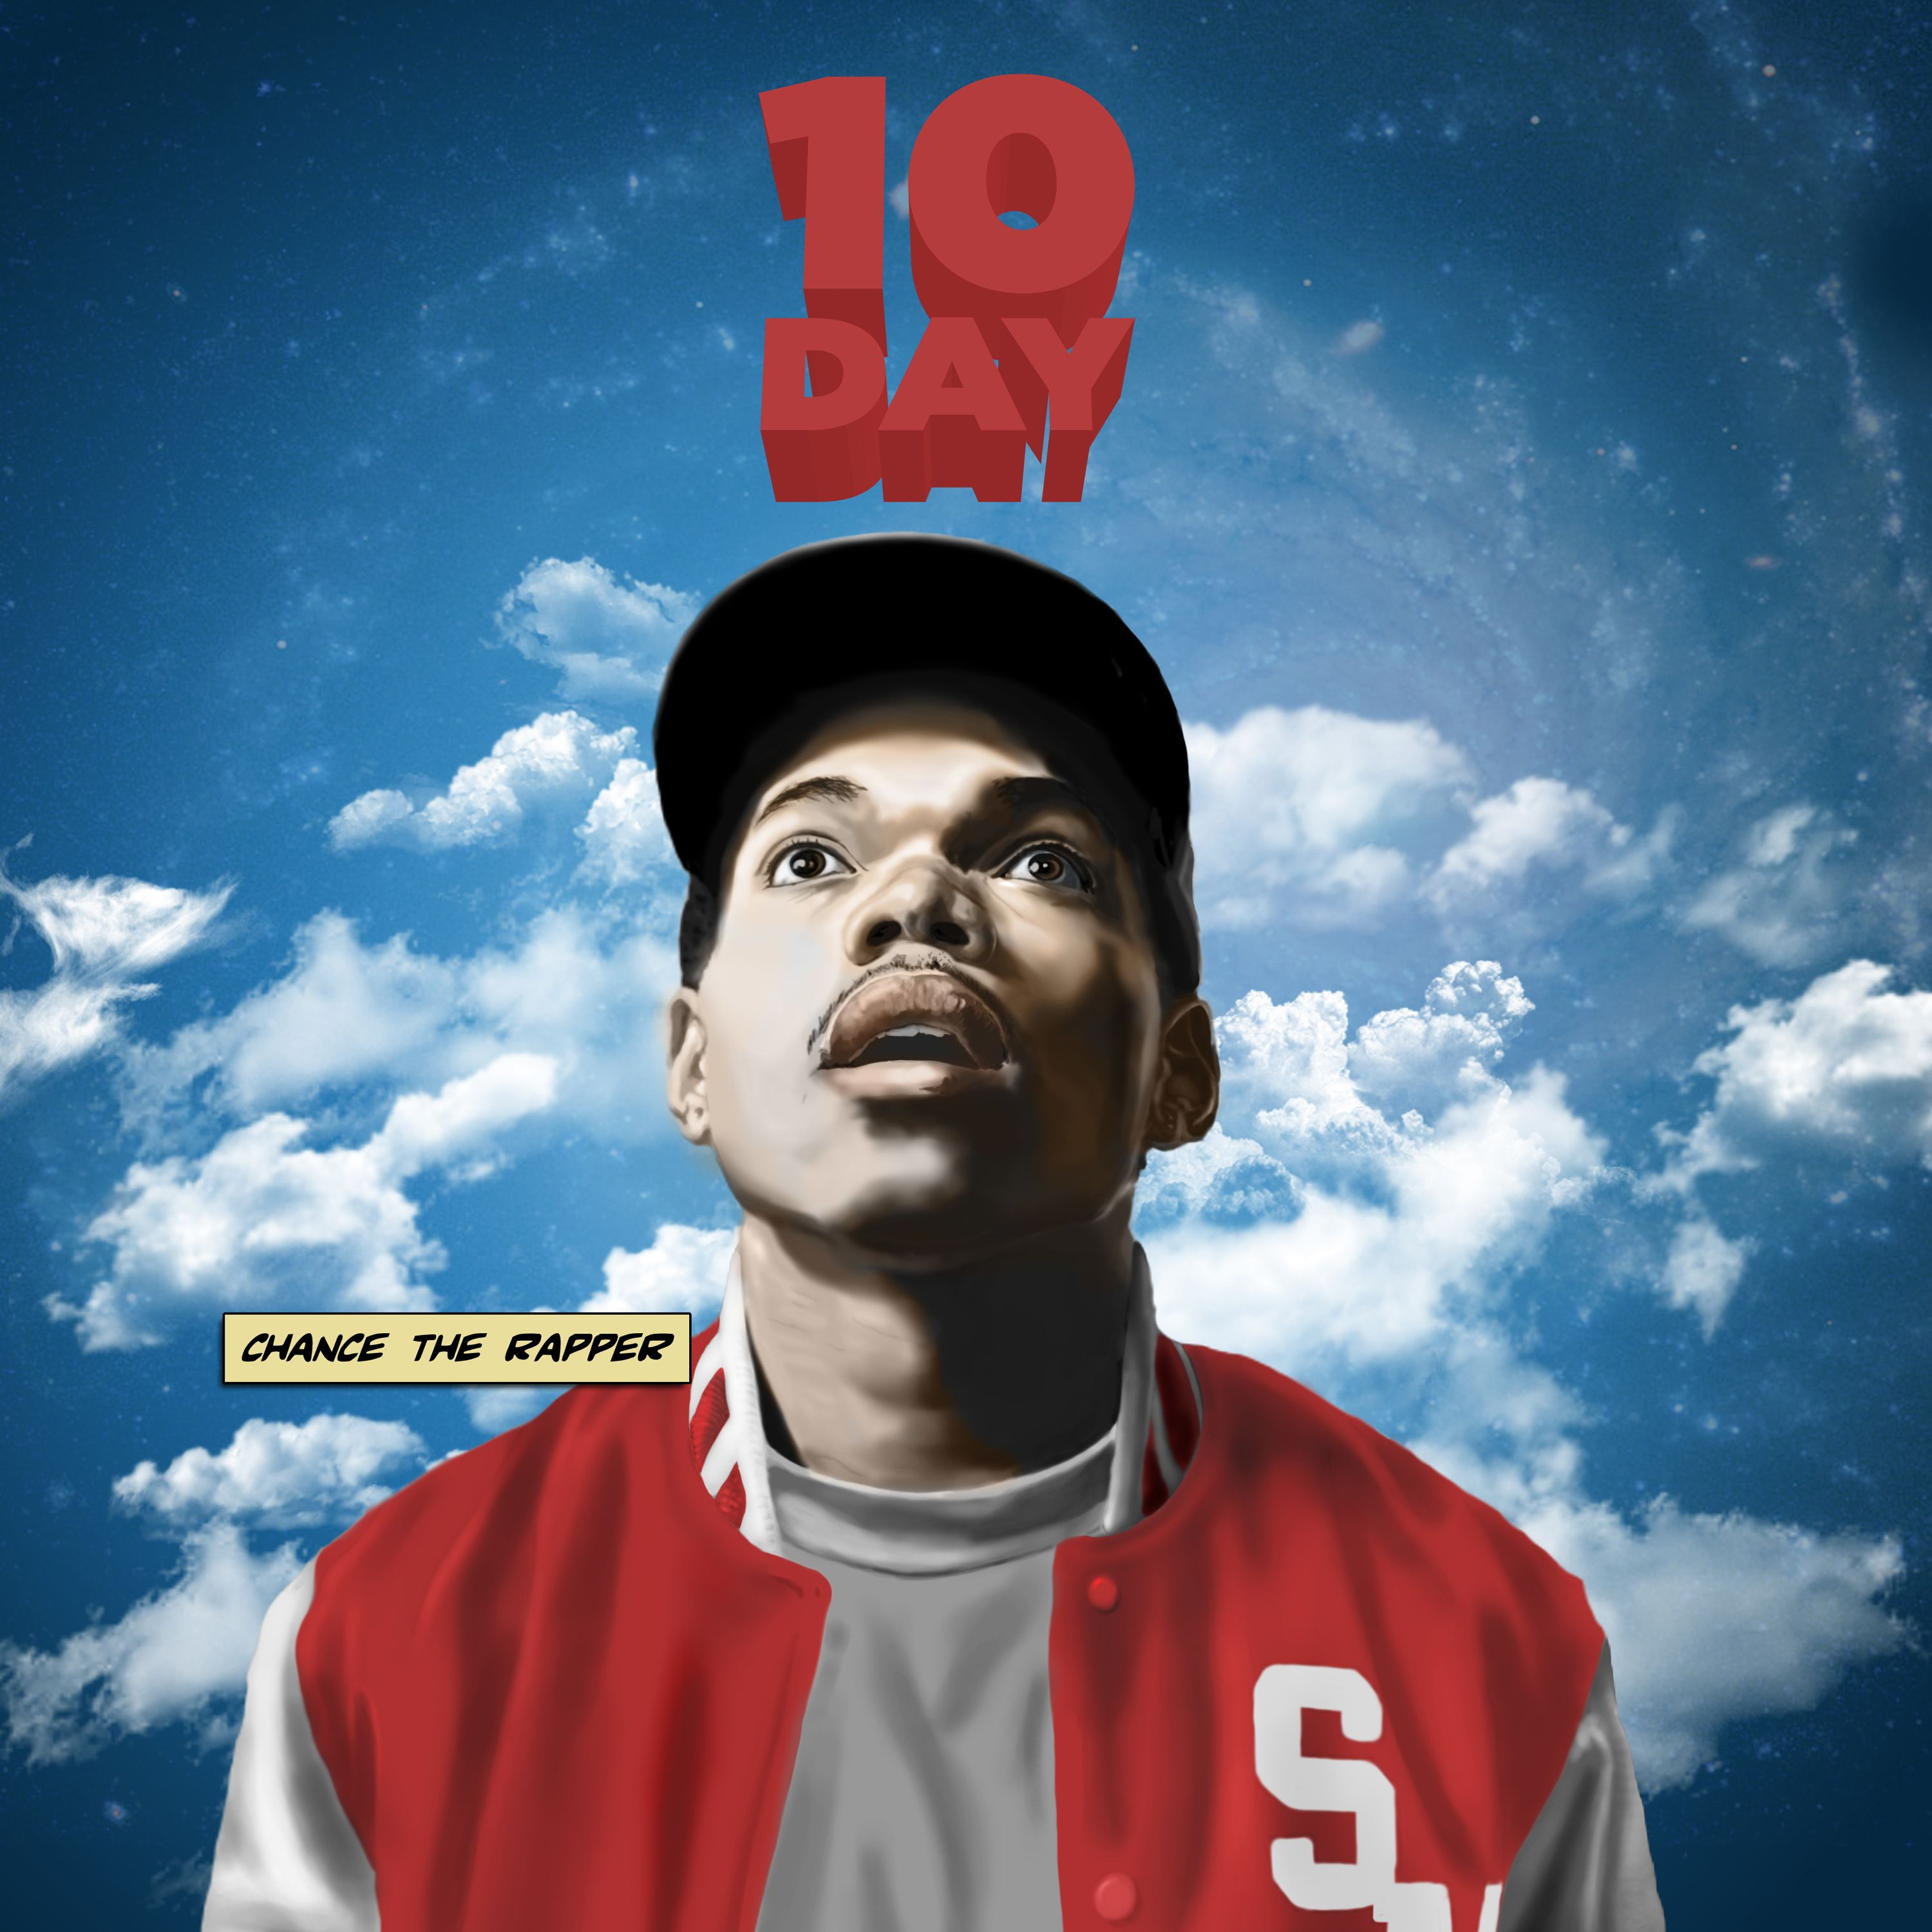 Download coloring book chance rapper mixtape - Chance The Rapper 10 Day Full Mixtape